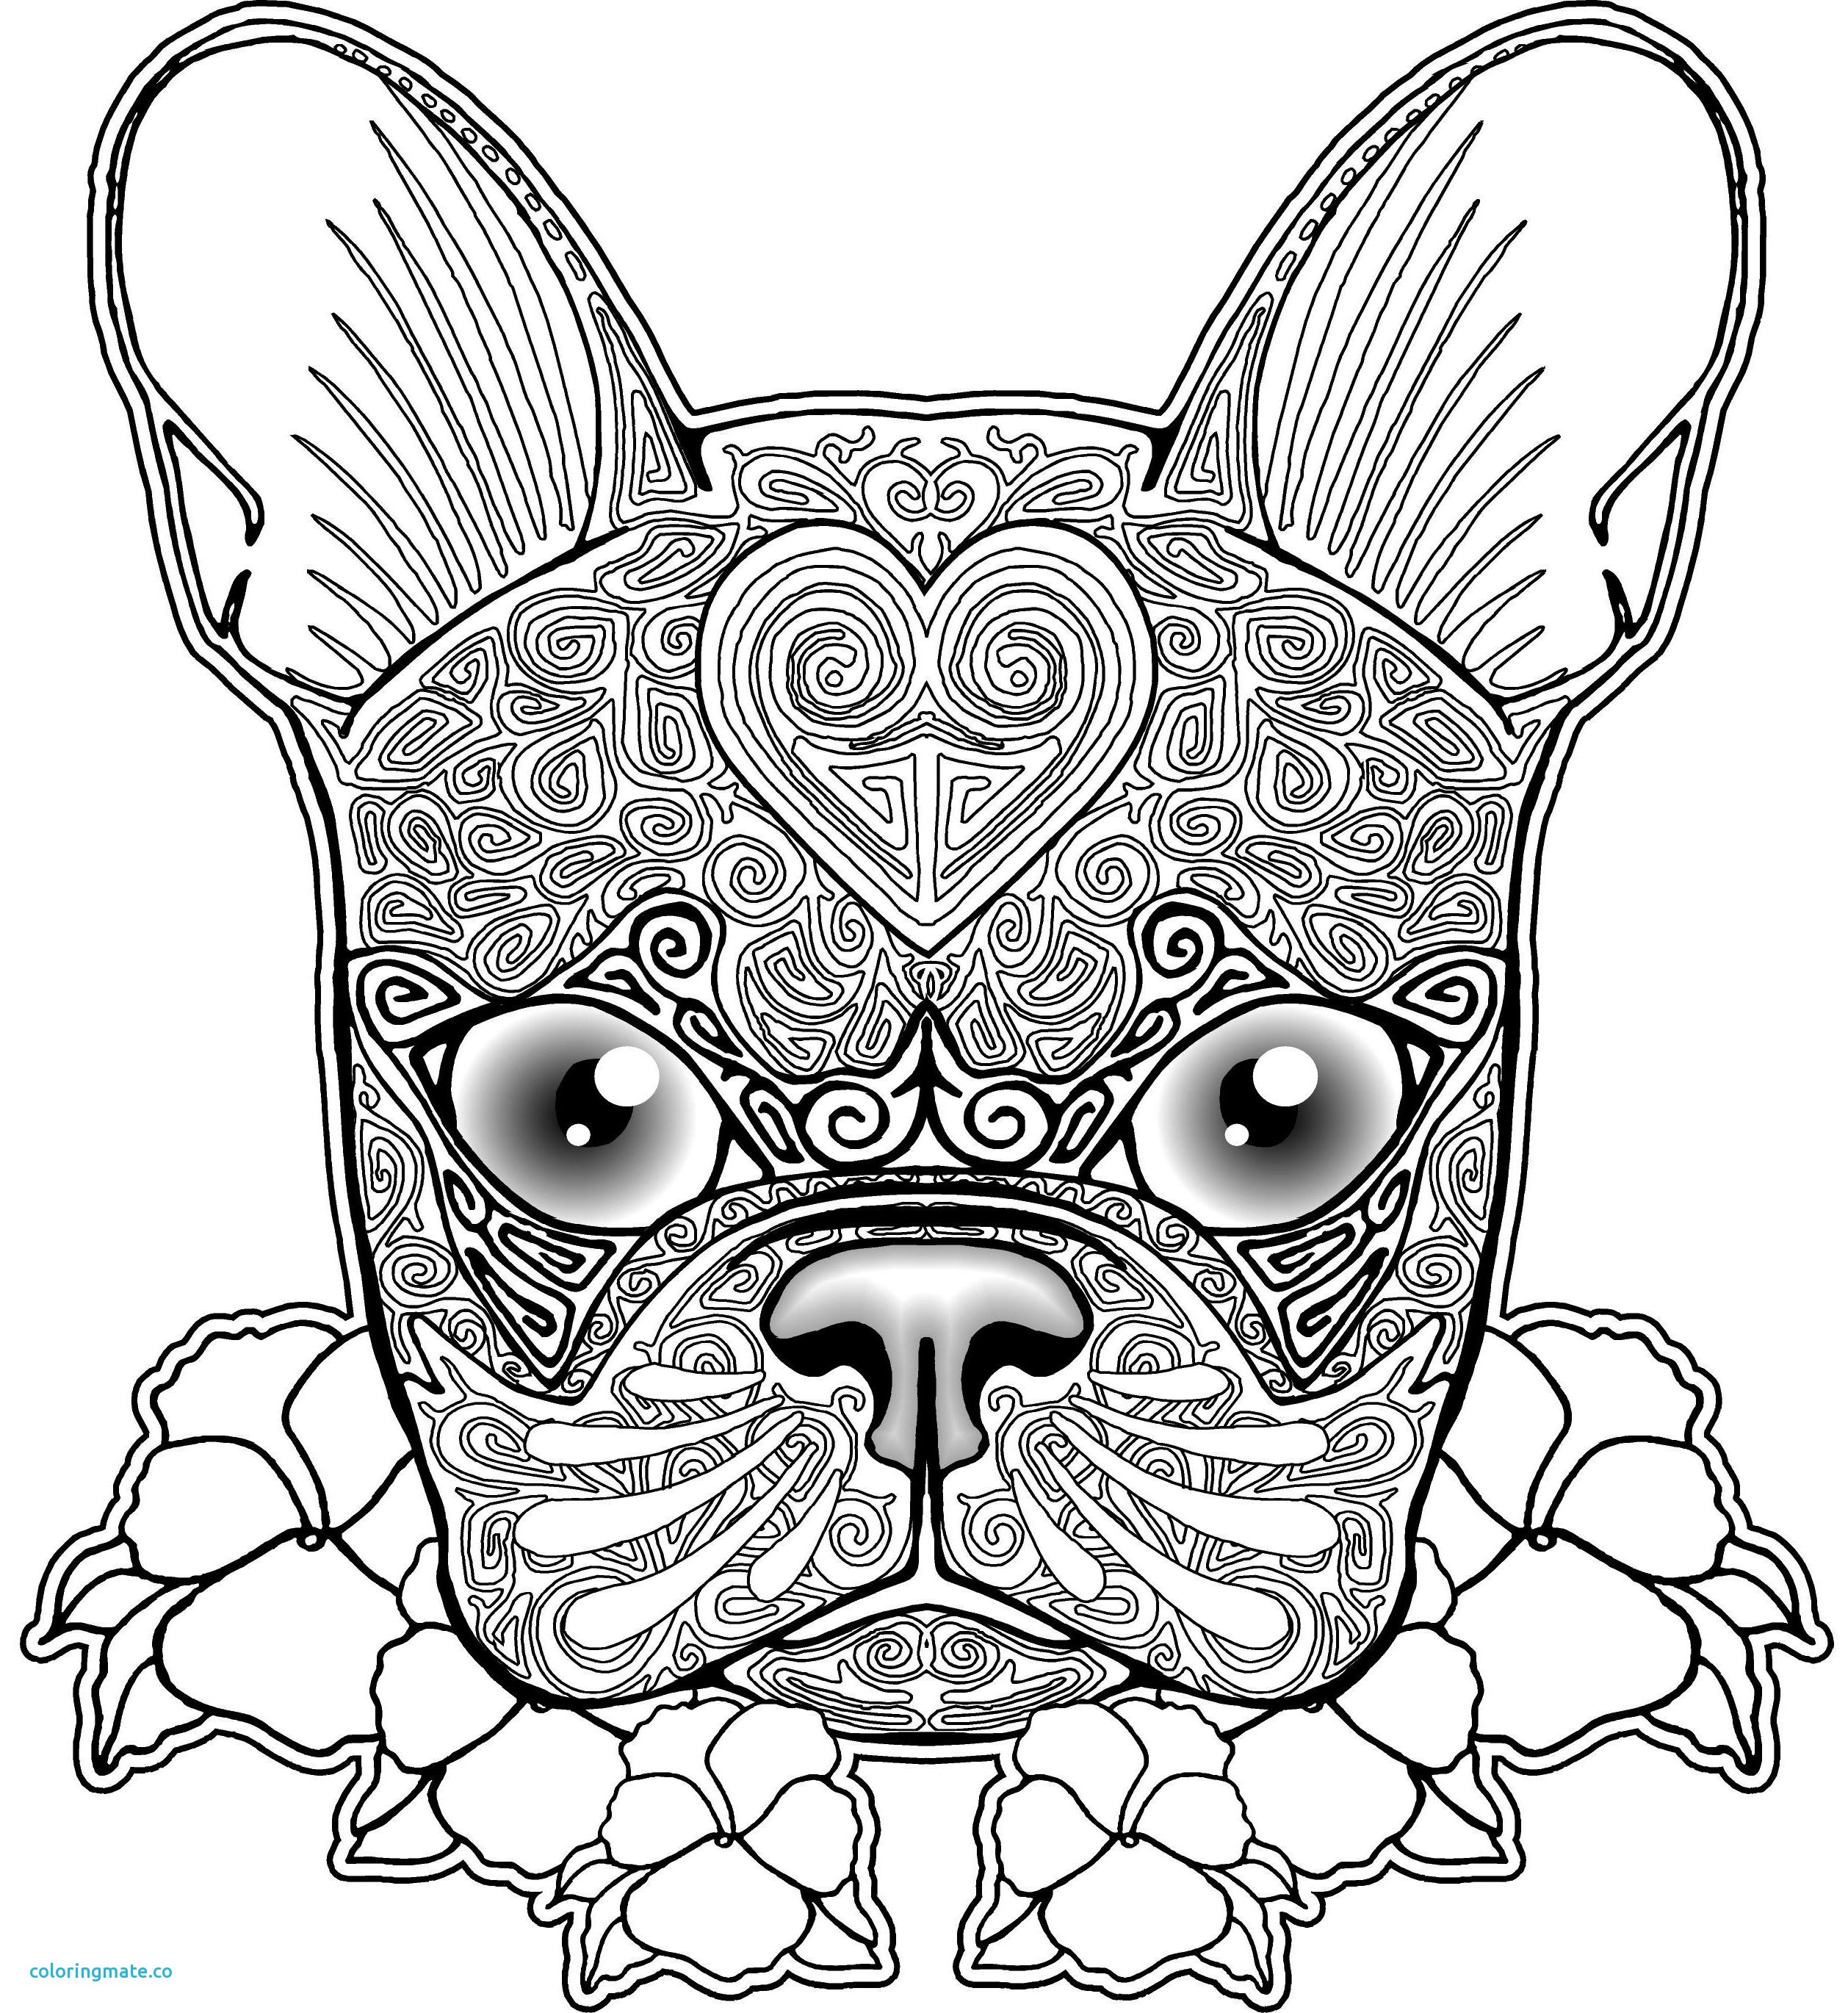 2516x2740 Fresh Dog Coloring Pages For Adults Luxury Dog Coloring Pages